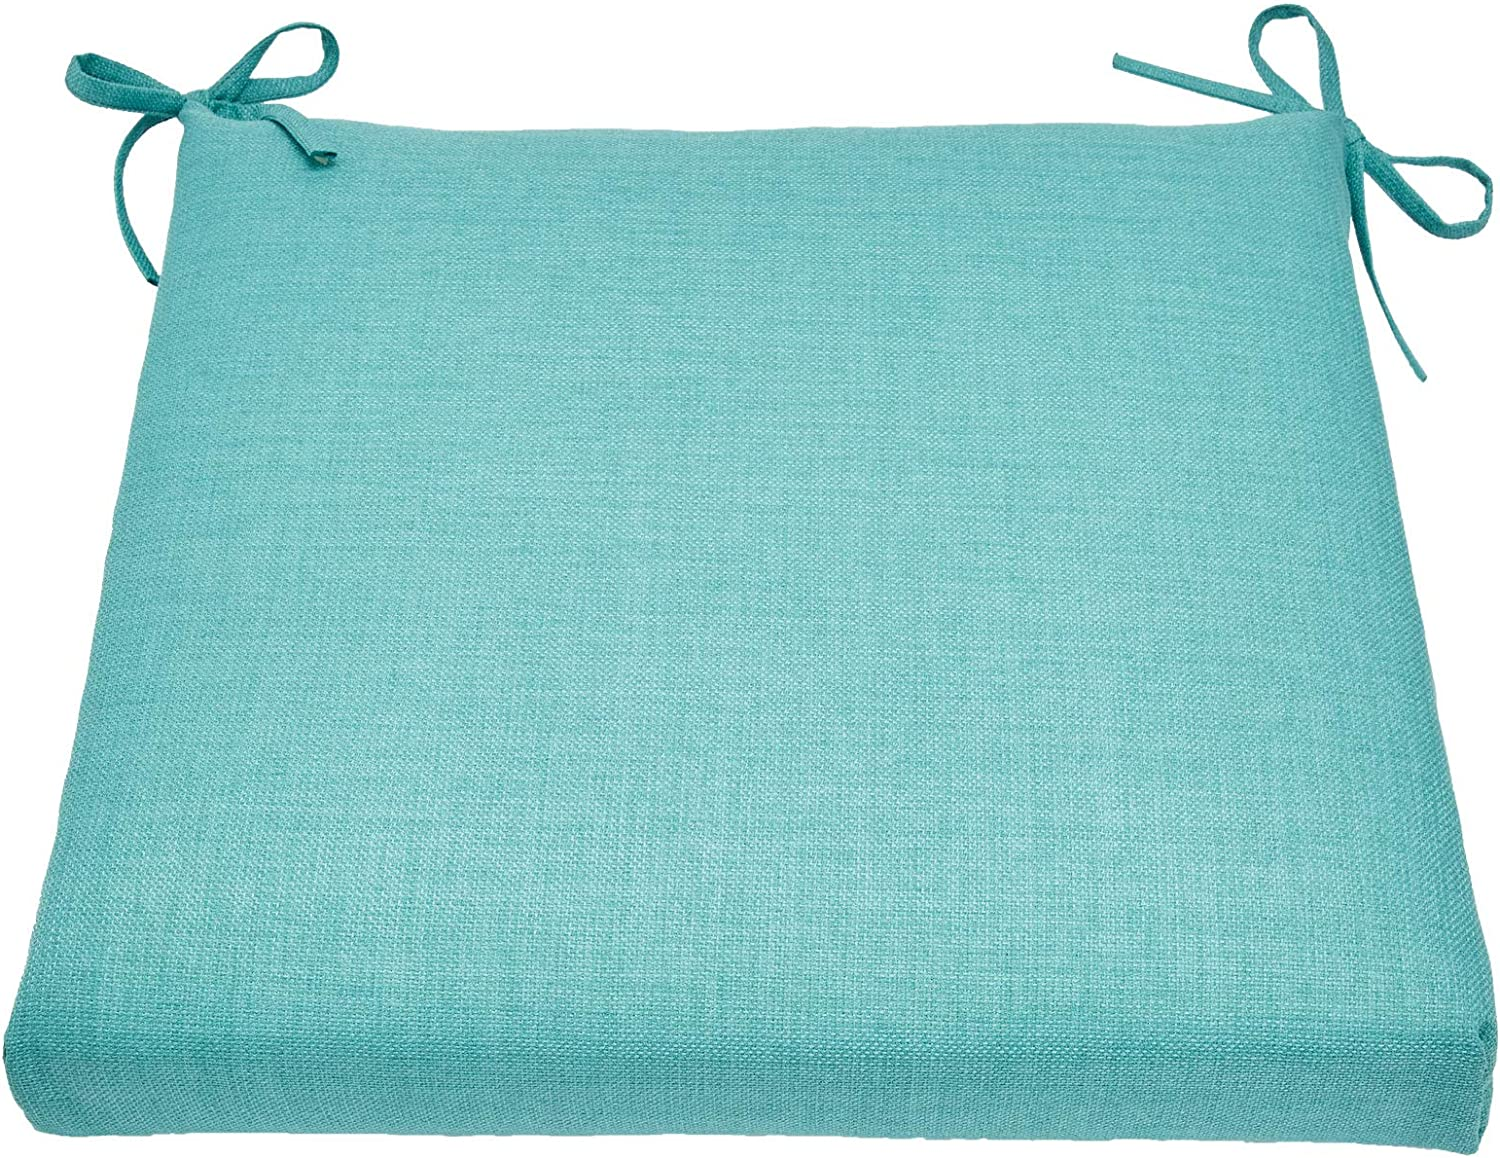 BrylaneHome Inventory cleanup selling sale Patio Chair Cushion latest Haze Blue